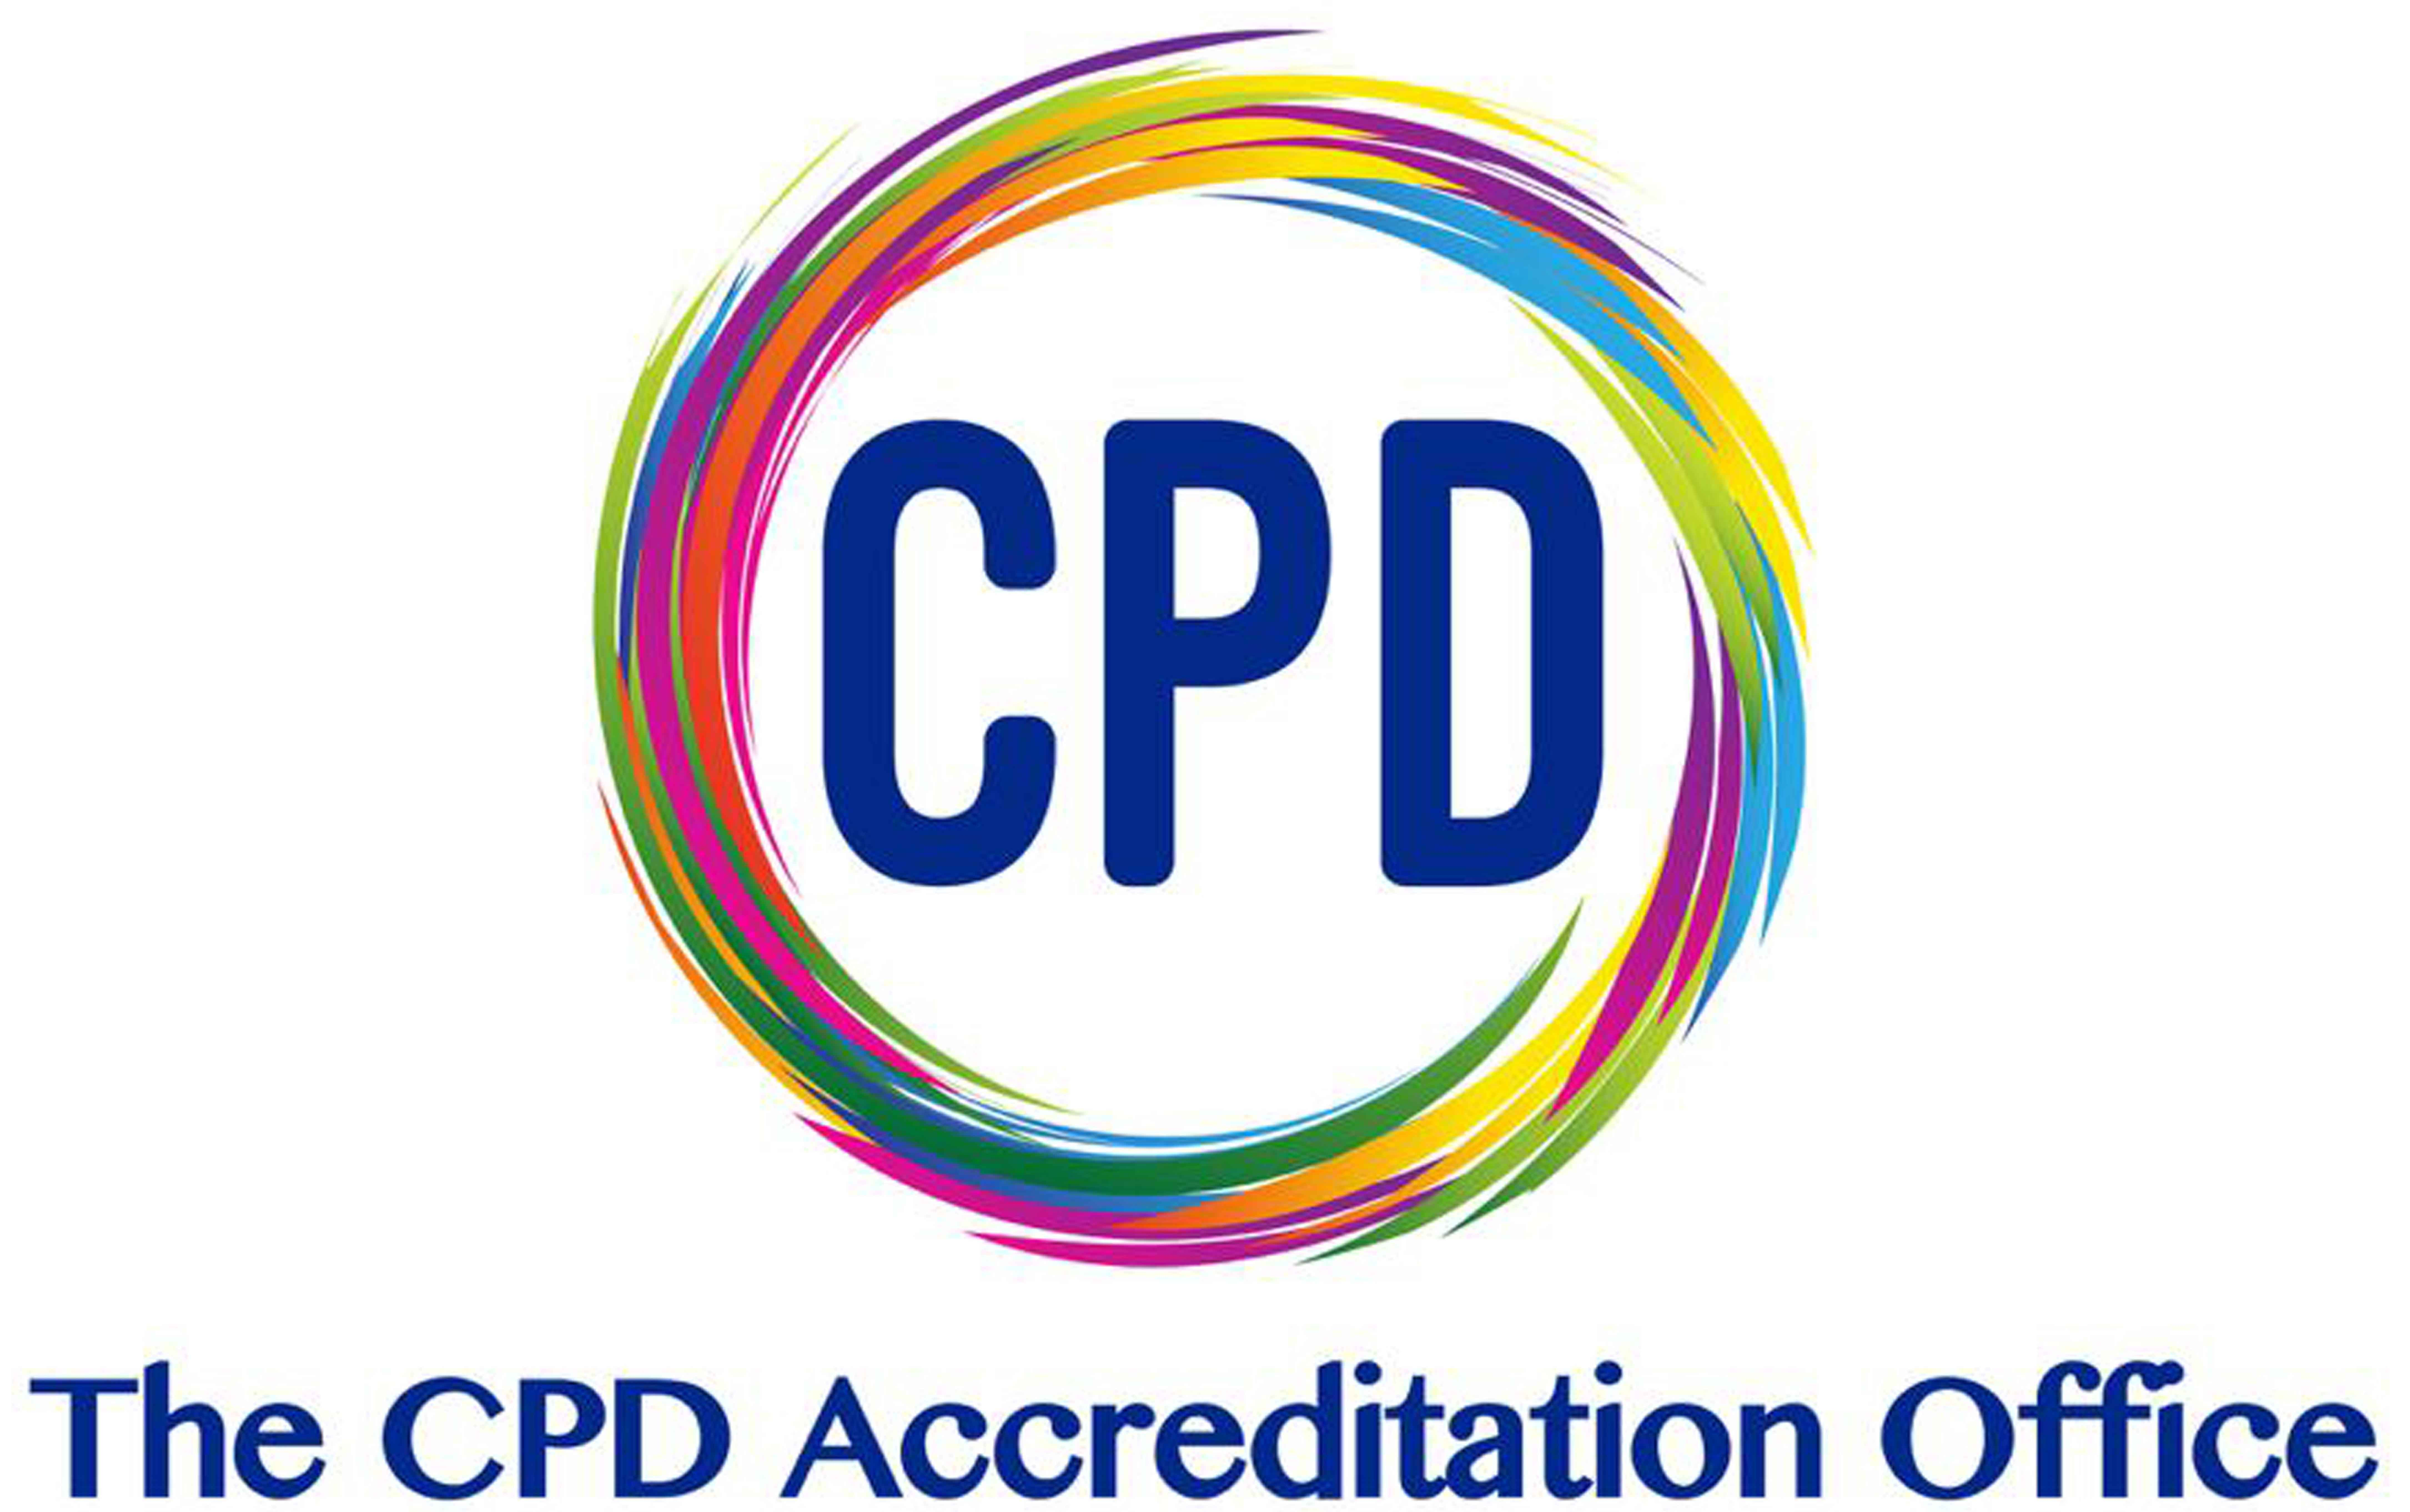 The CPD Accreditation Office